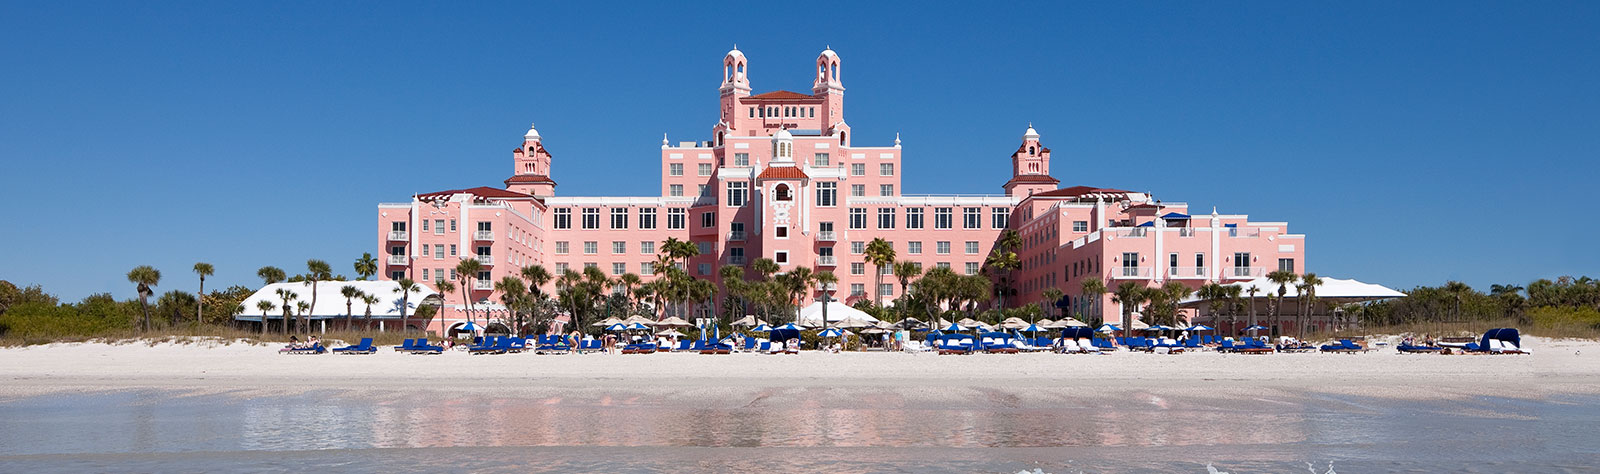 Book Your Stay At The Legendary Pink Palace